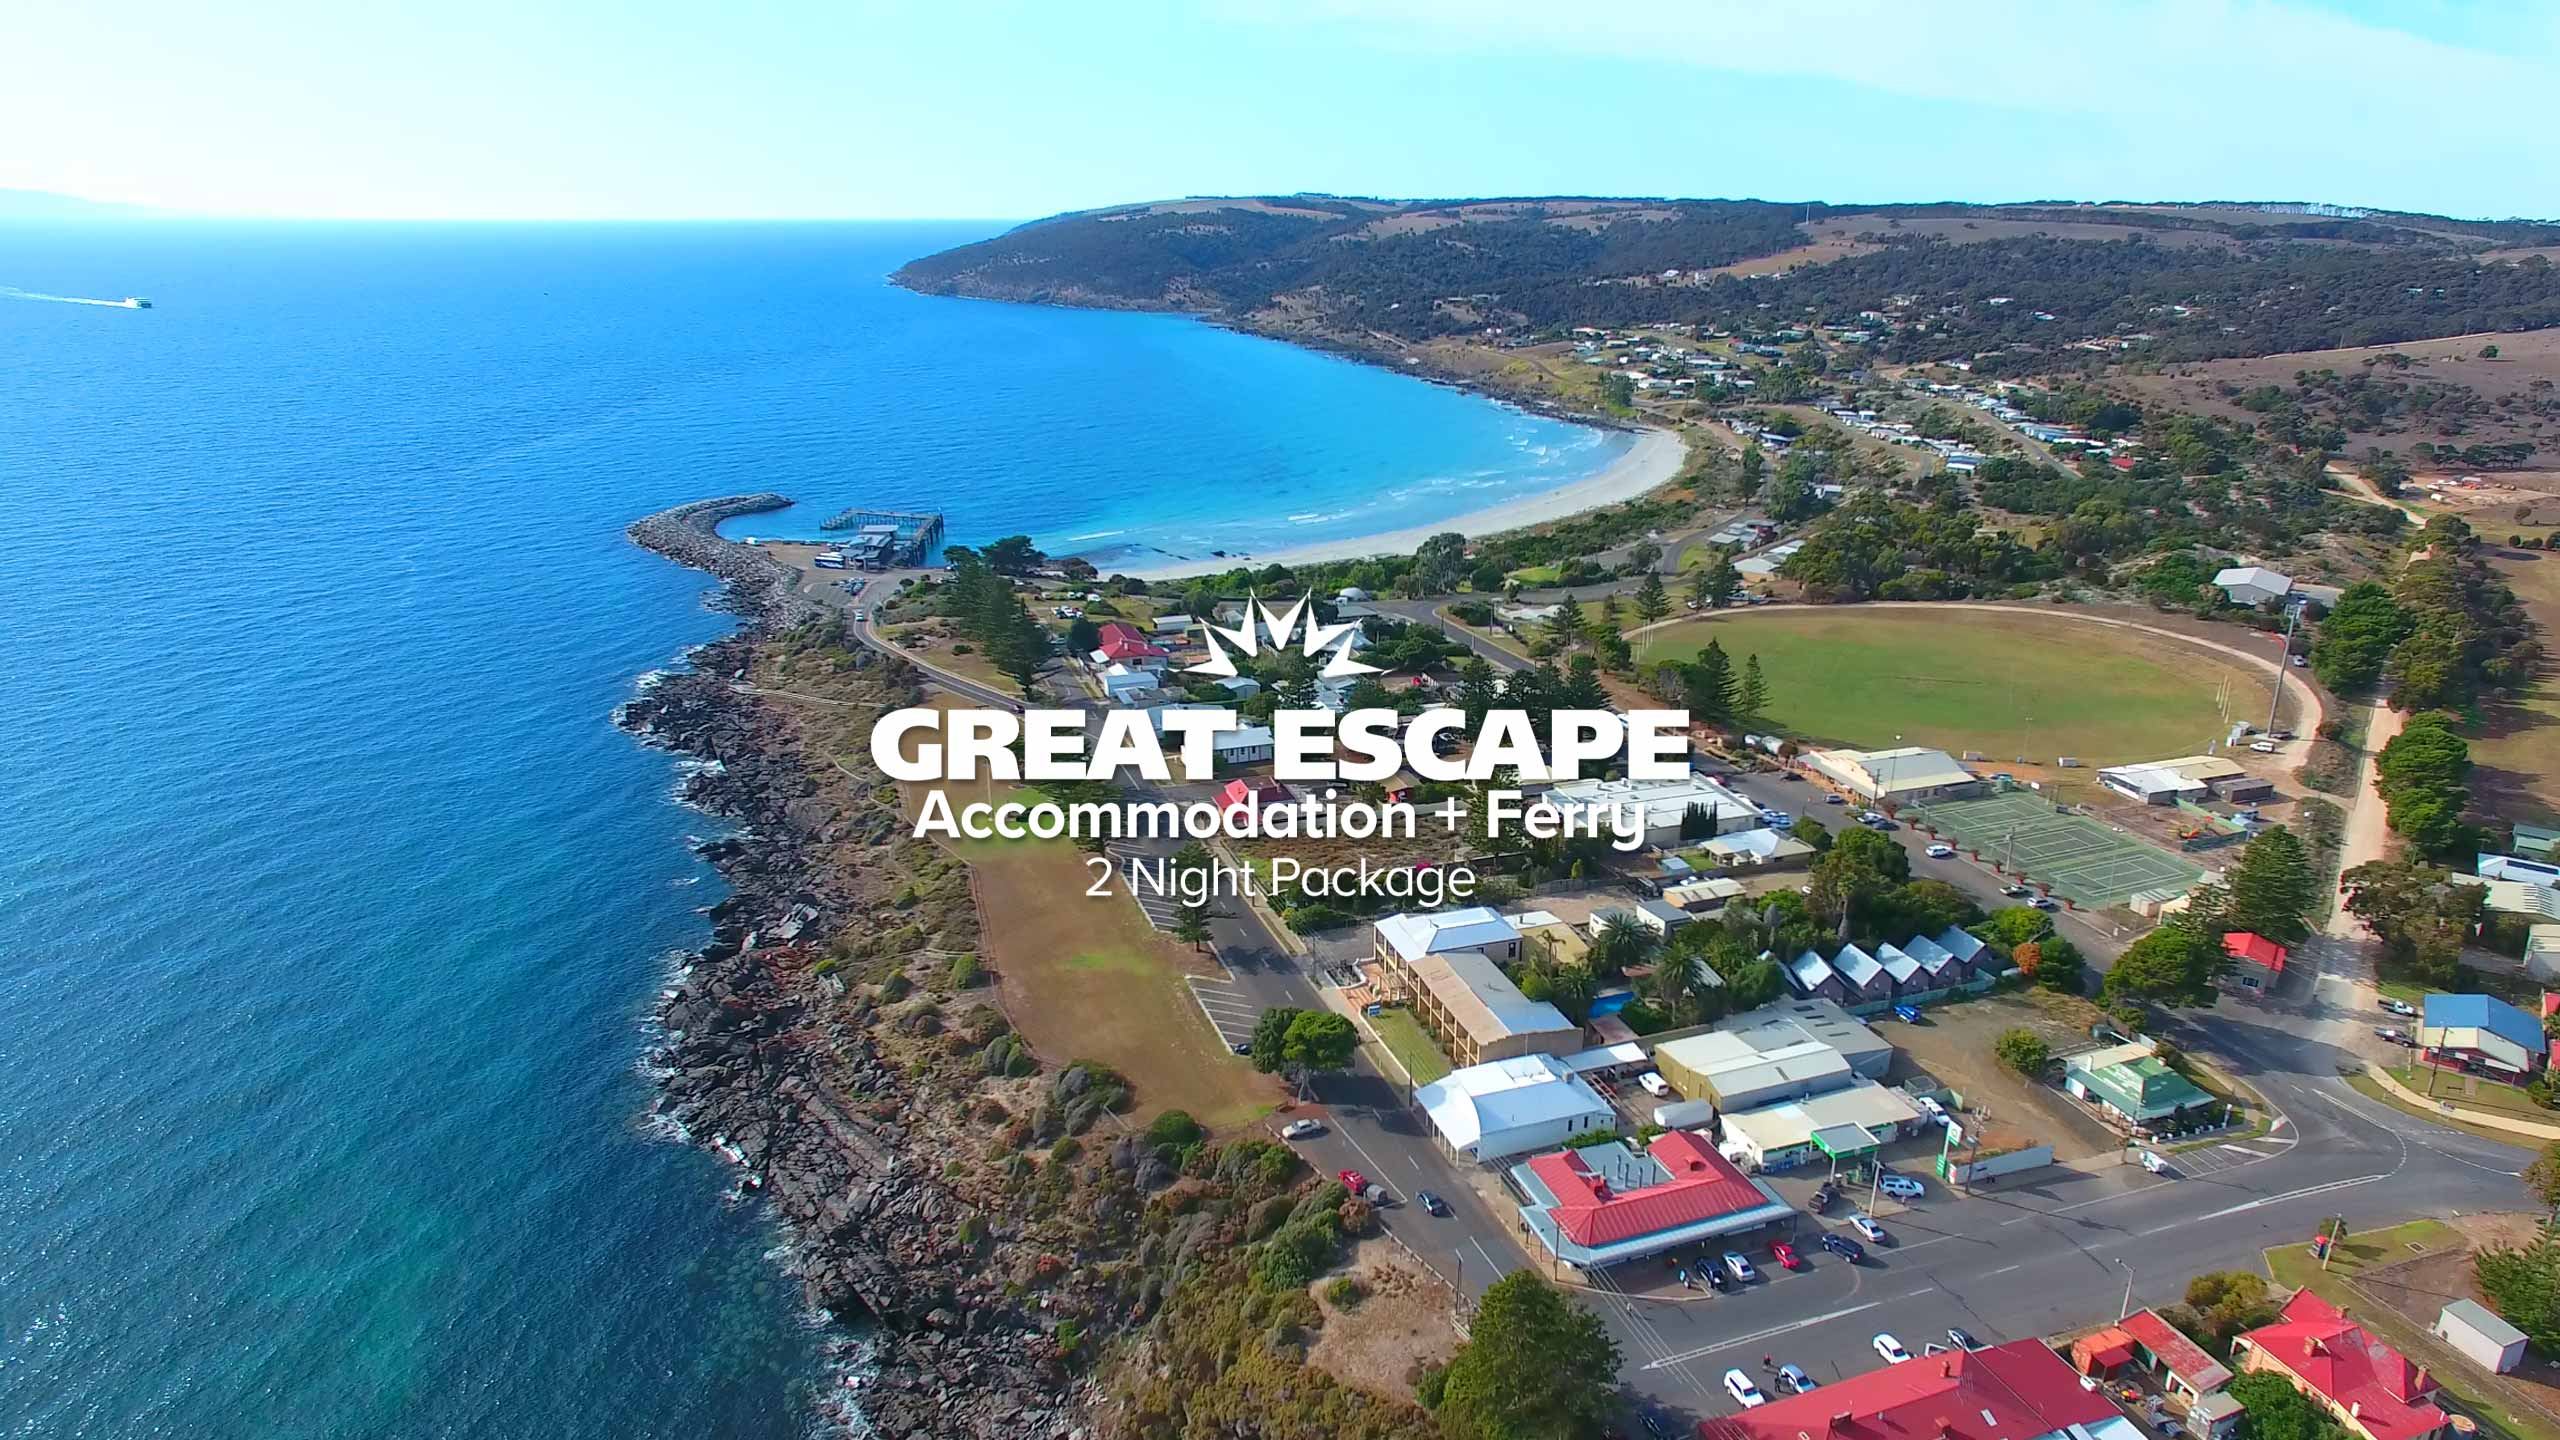 promobanner-greatescape-1-2020